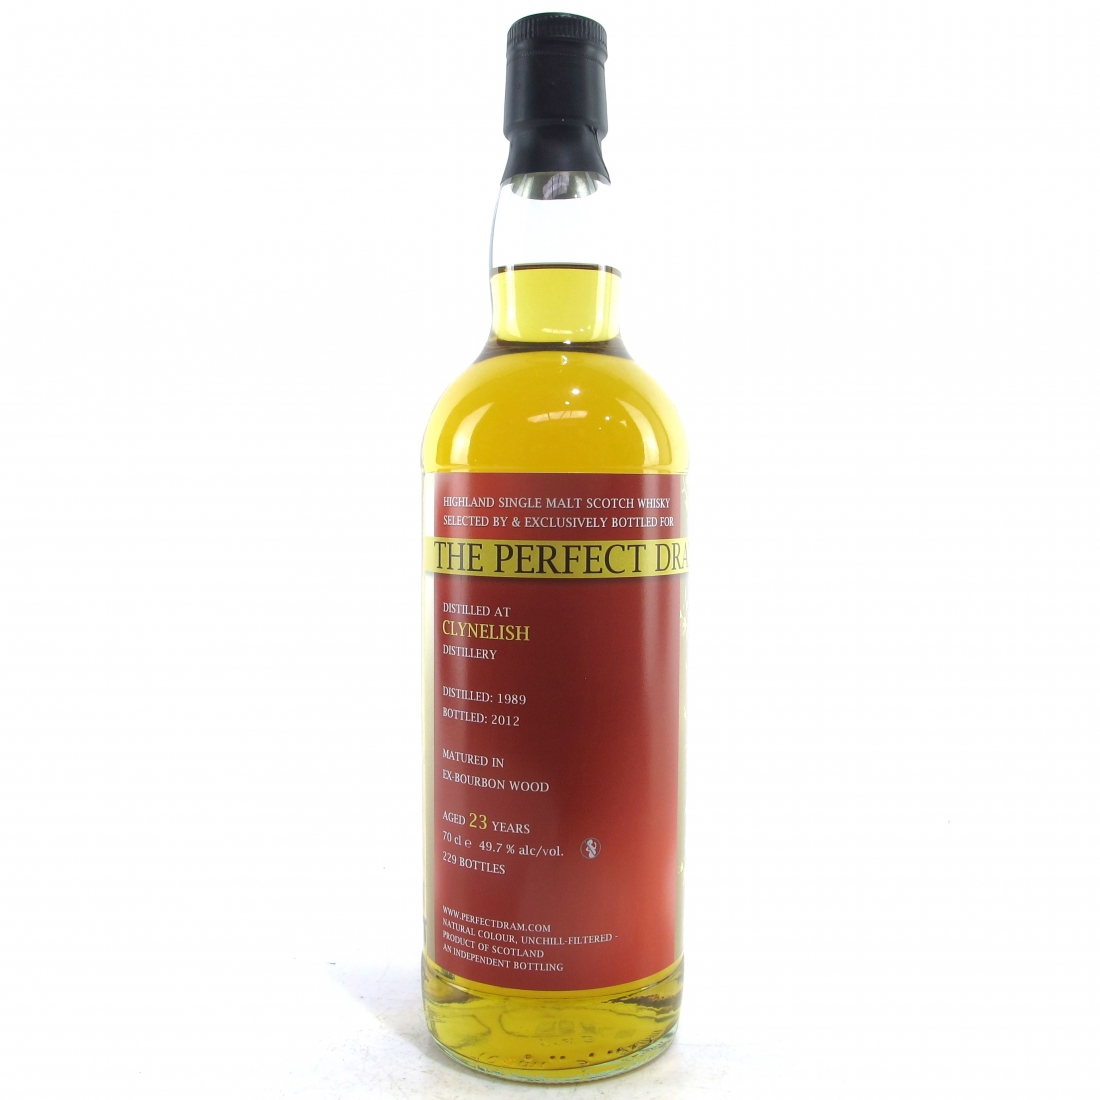 Clynelish 1989 Whisky Agency 23 Year Old / Perfect Dram